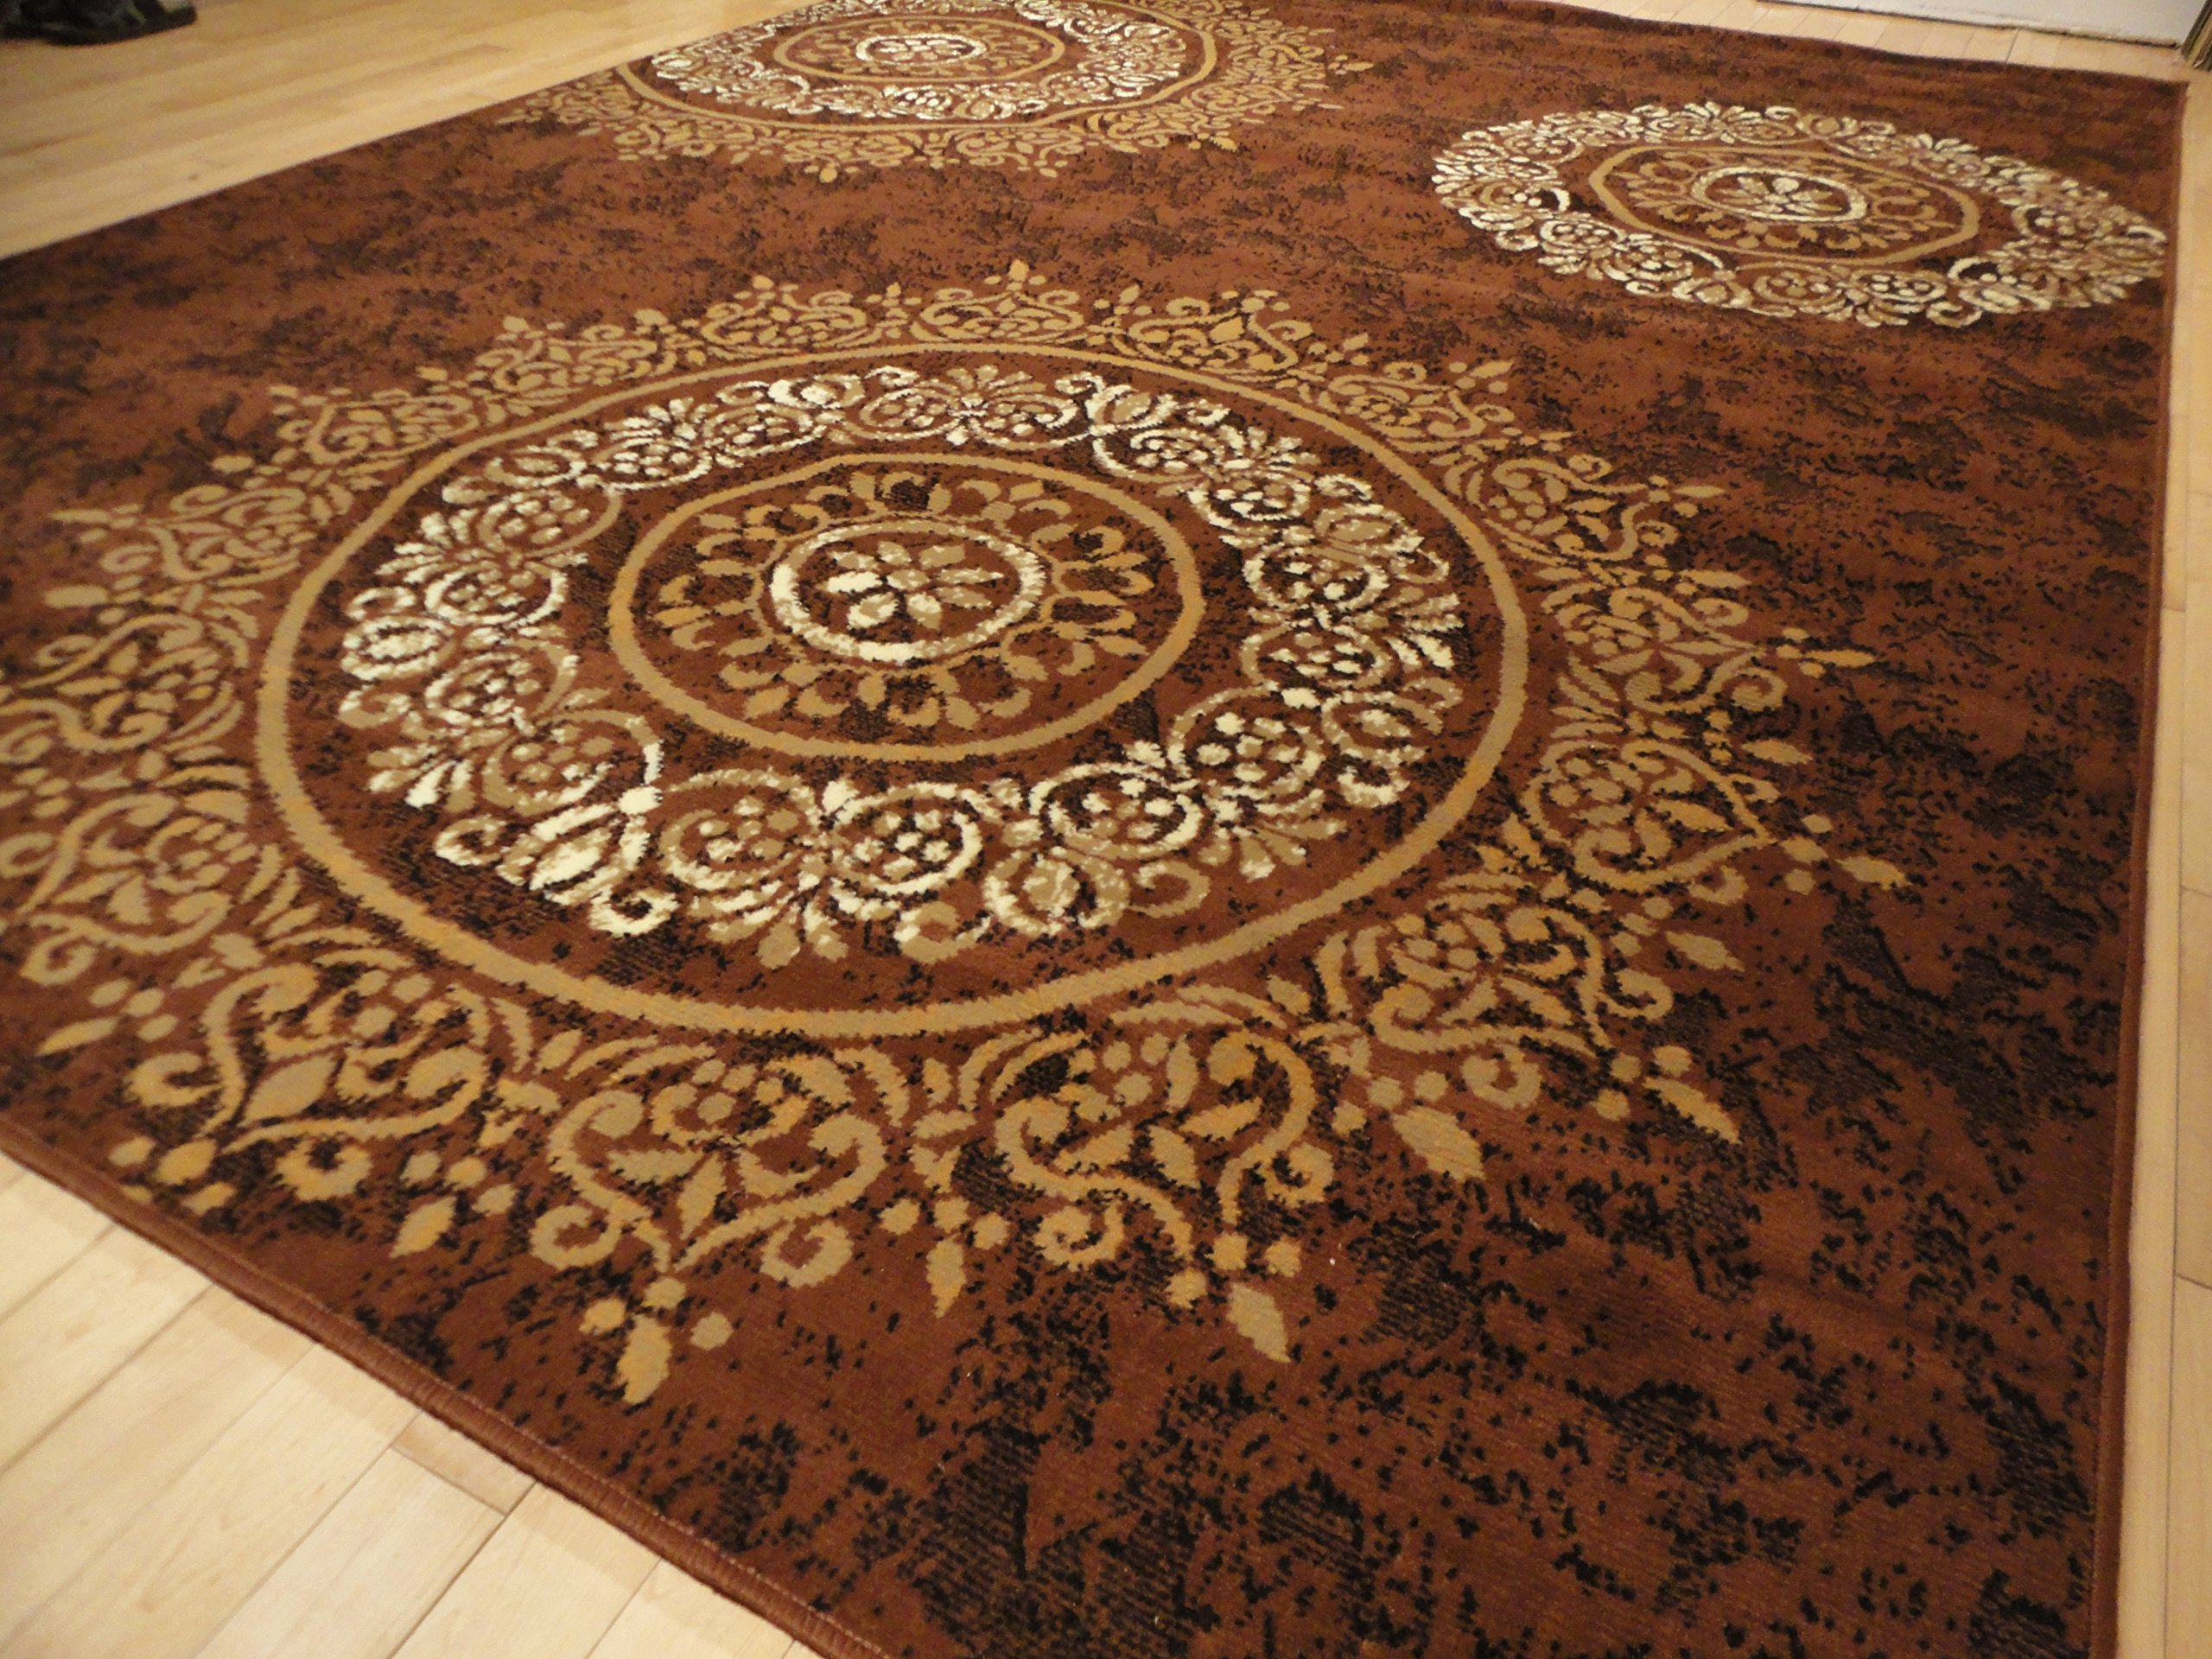 New Contemporary Brown Beige Black Cream Modern Circles Area Rugs 2x11 Long Runner Rug For Hallway Stair Rugs Long Brown Runners 2 X11 Hallway Runner Buy Online In Montenegro At Desertcart Productid